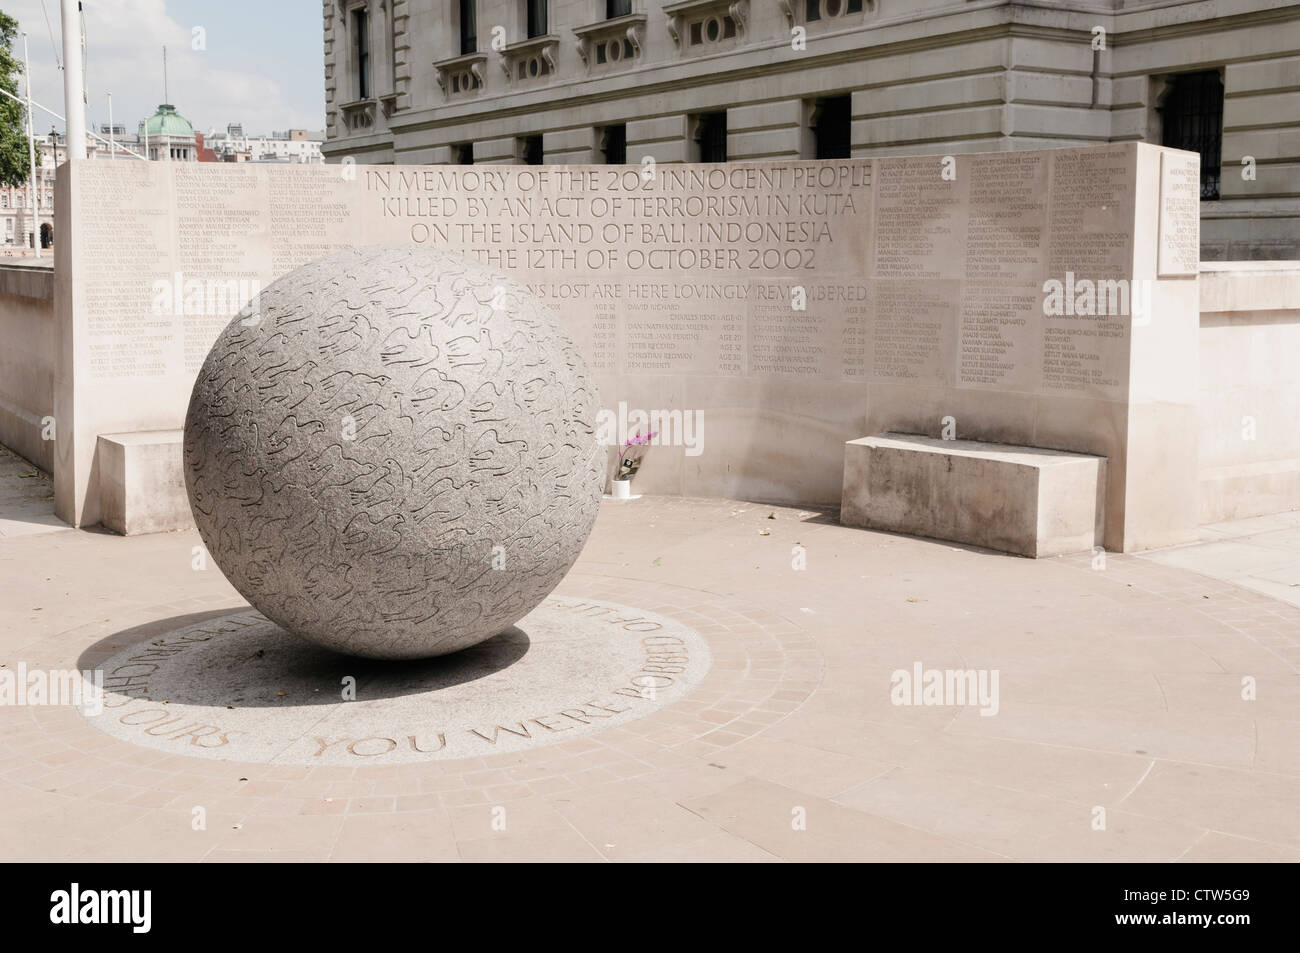 The Bali Bombing Monument by the Churchill War Rooms on Horse Guard Lane by St. James Park. - Stock Image